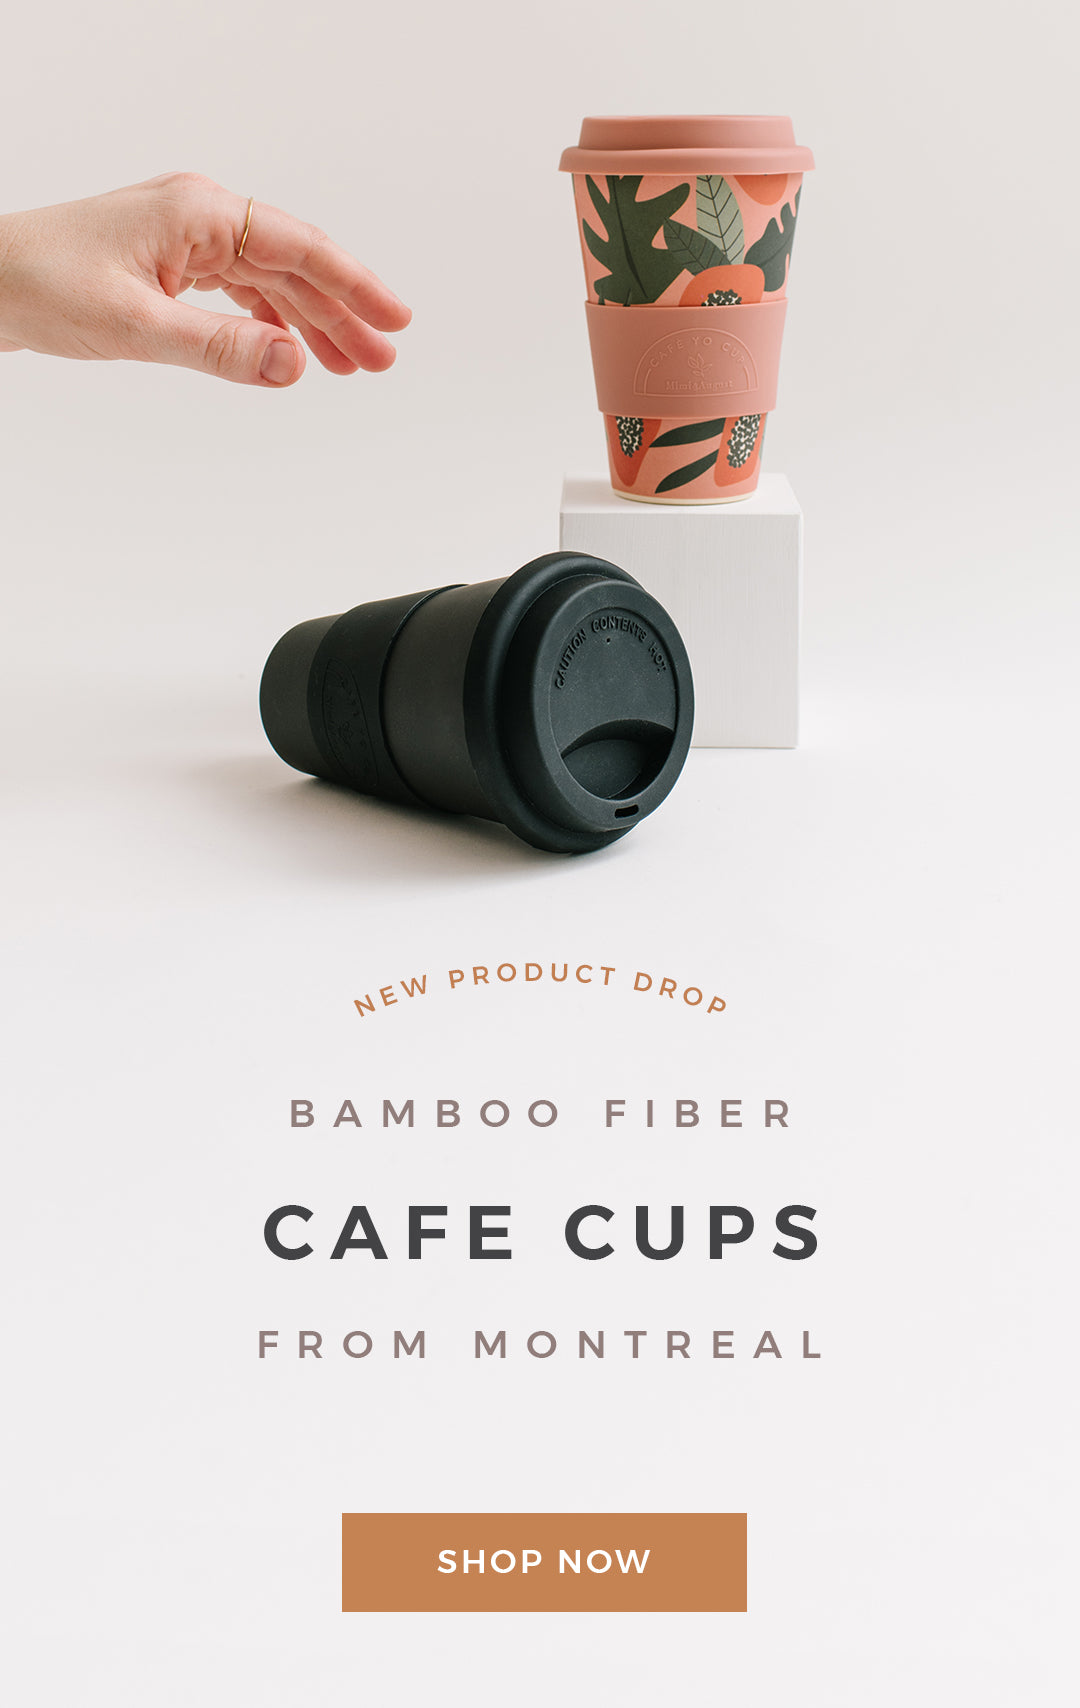 Bamboo Fiber Cafe Cups from Montreal